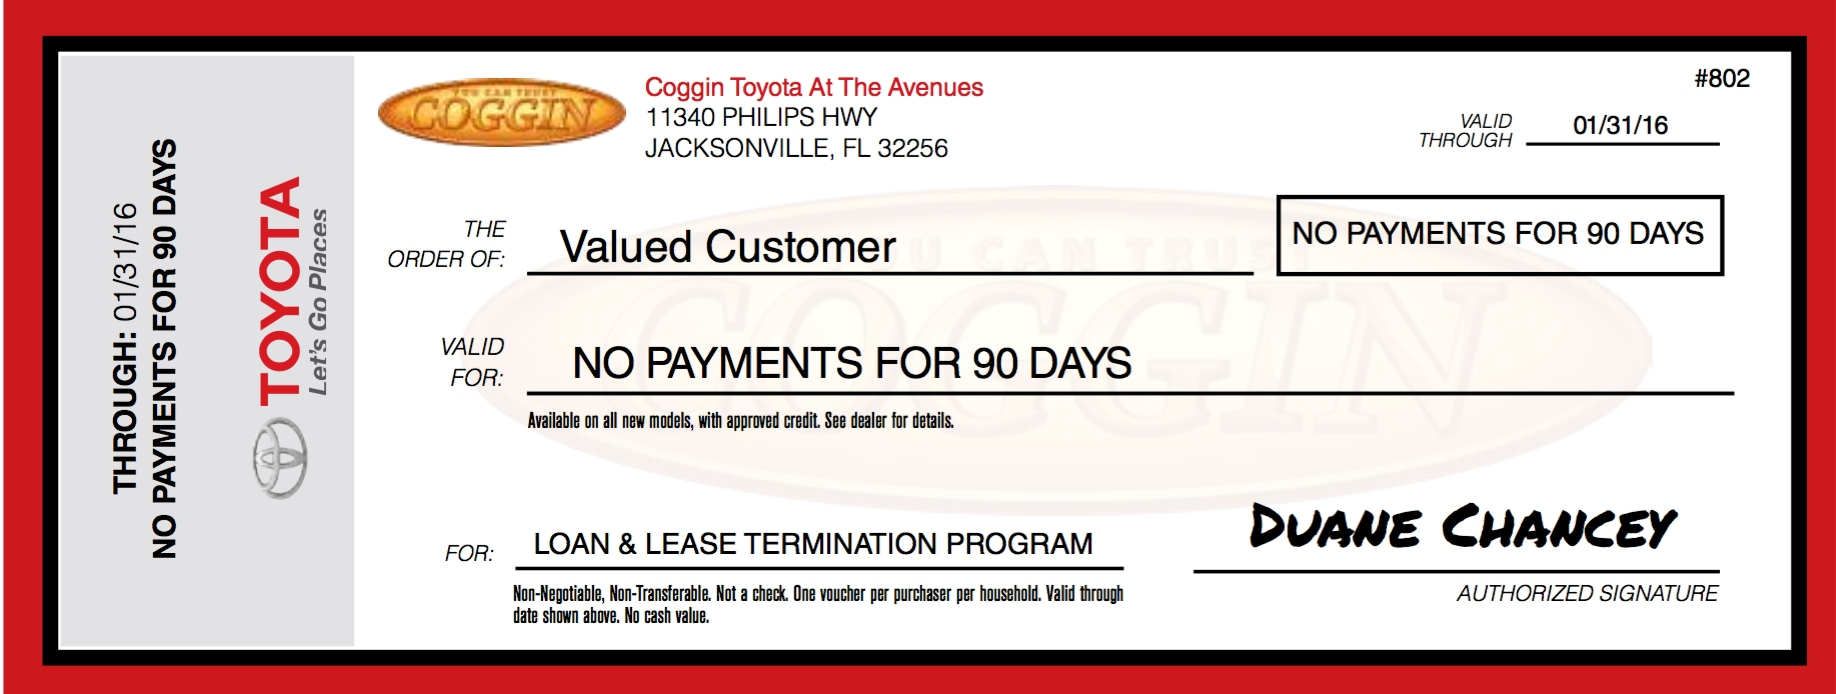 Loan and Lease Termination No Lease Voucher